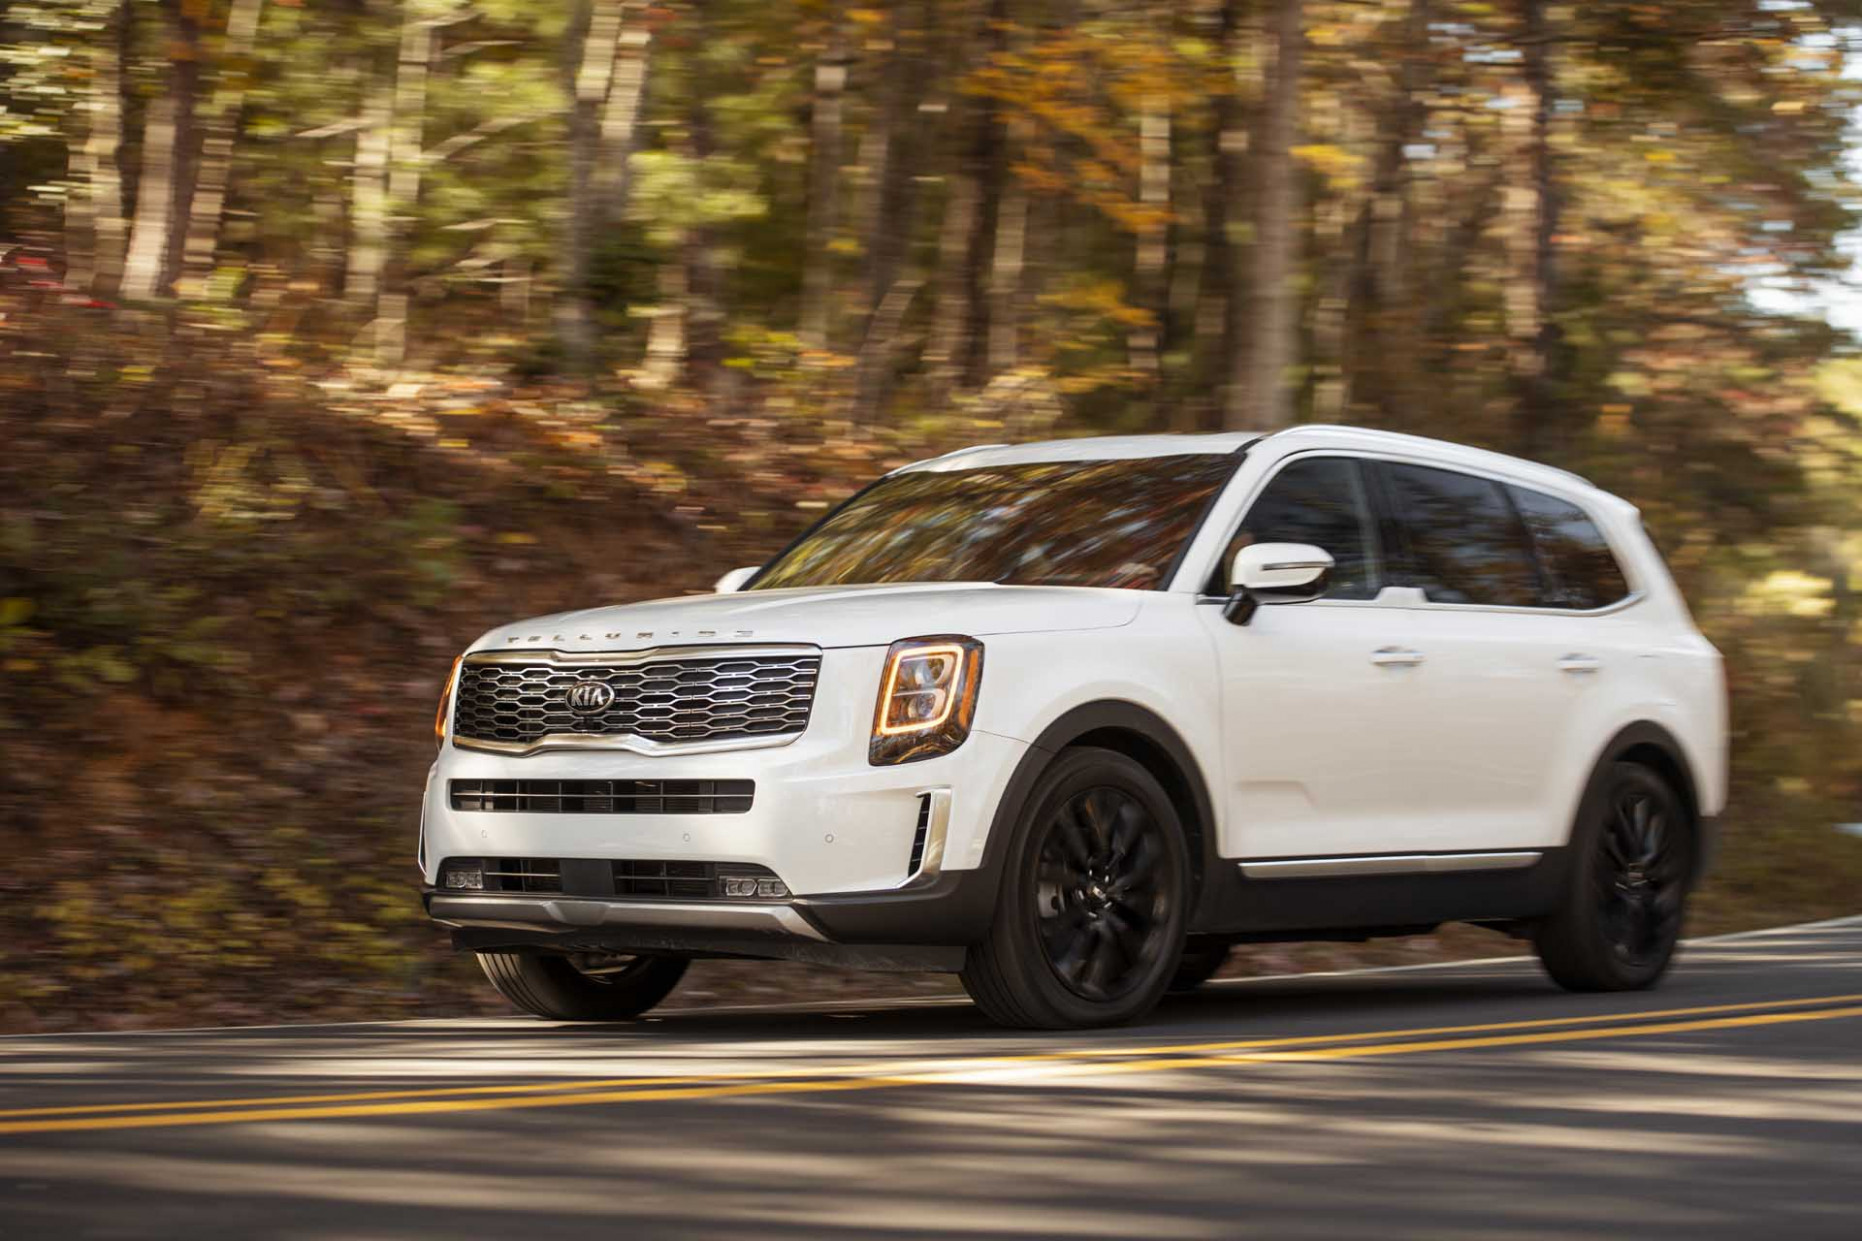 Reviews 2022 Kia Telluride Length